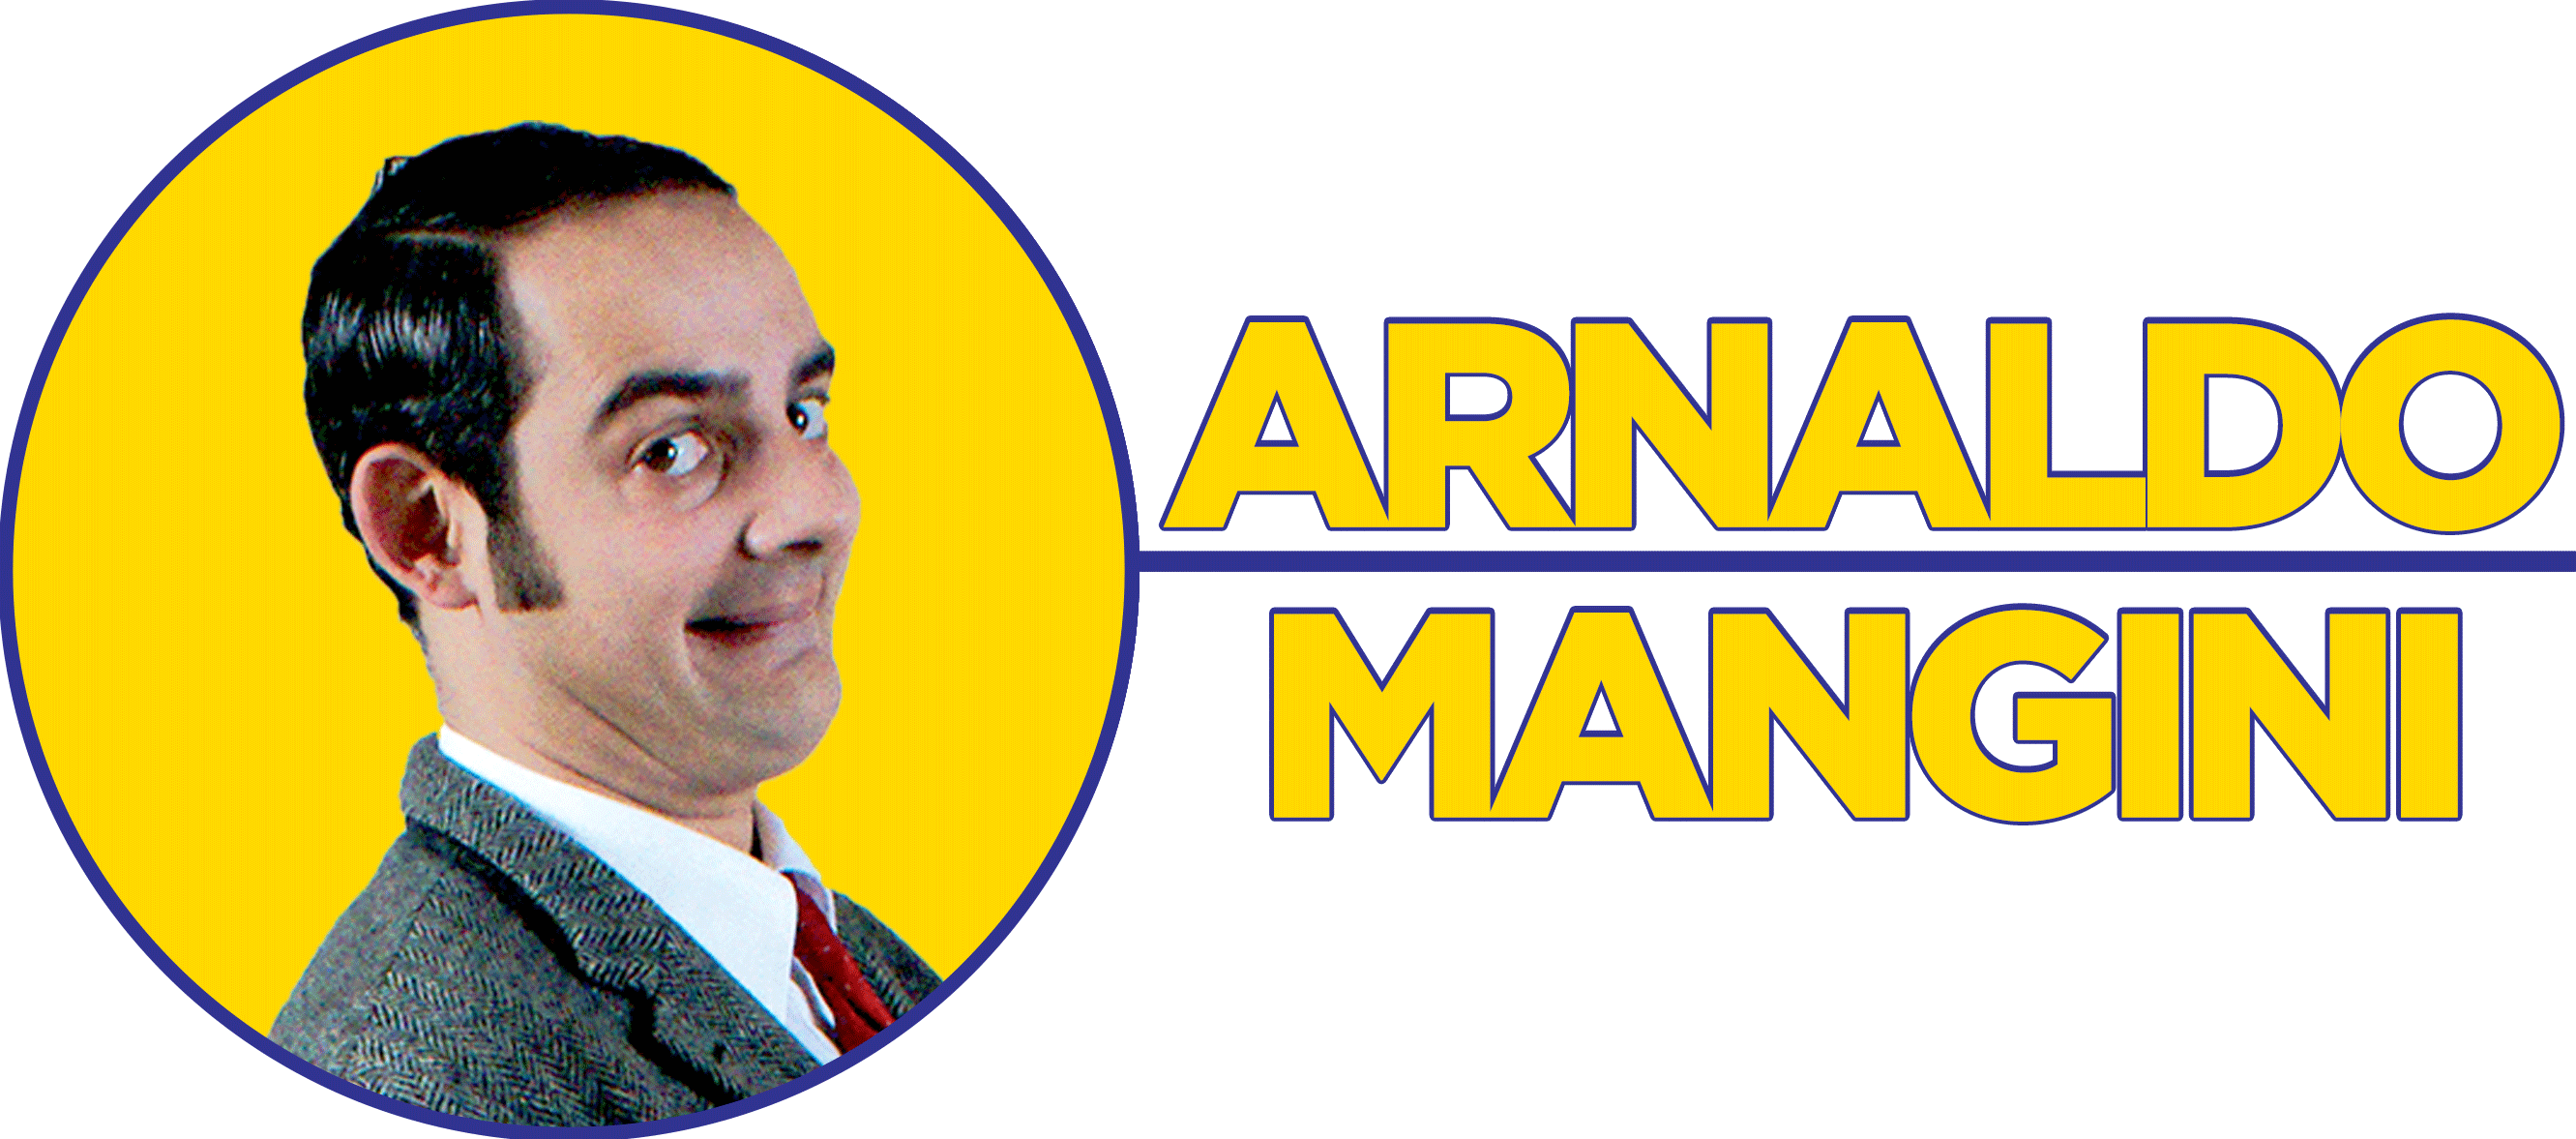 marketing Archivi - Arnaldo Mangini Clown Actor / MrBean Lookalike